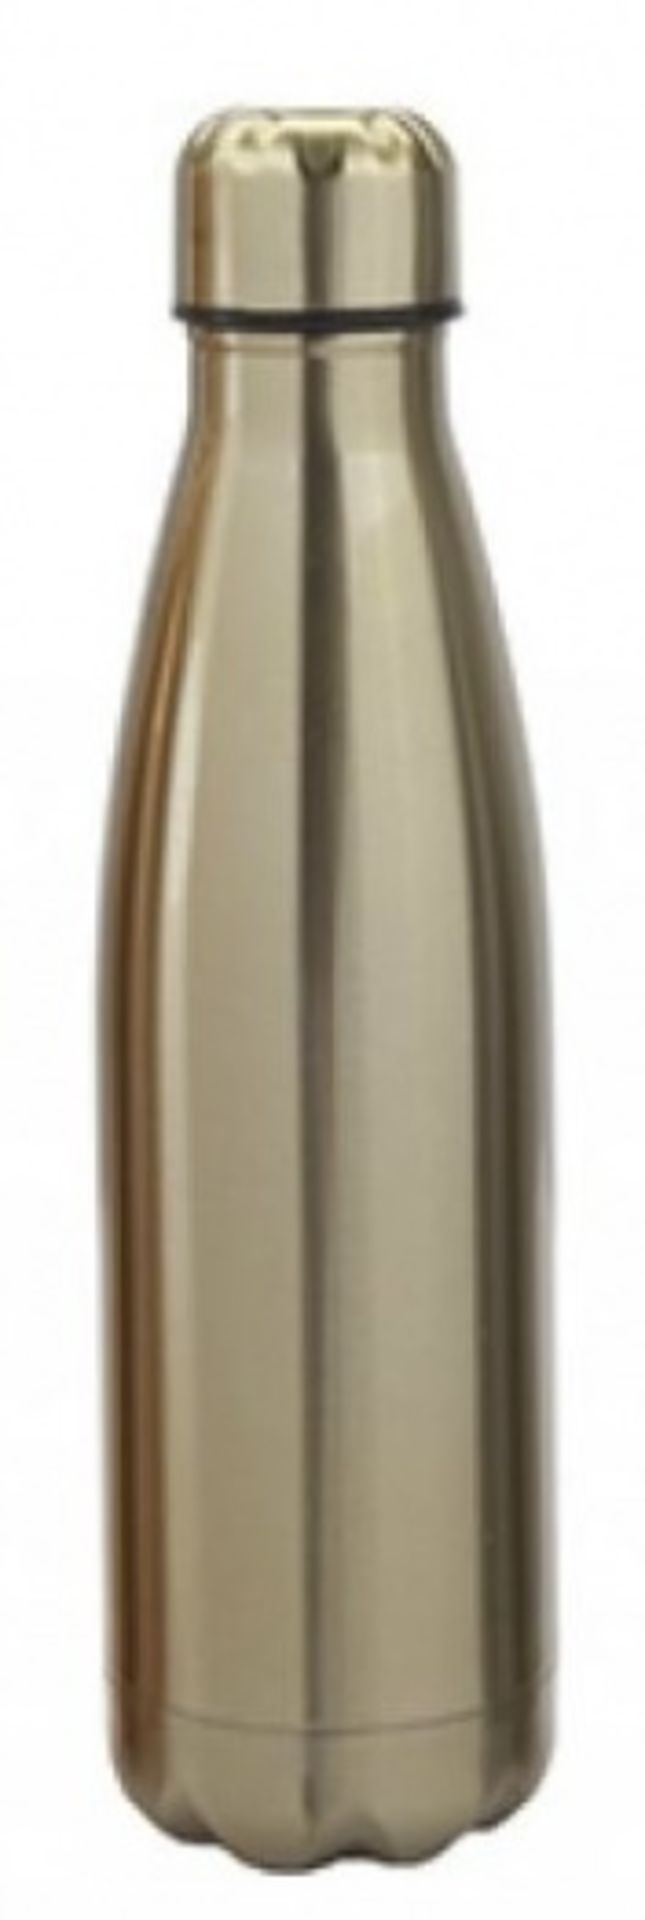 Lot 10284 - V Brand New Vacuum Insulated Steel Double Wall Vacuum Drinking Bottle (Colours May Vary)